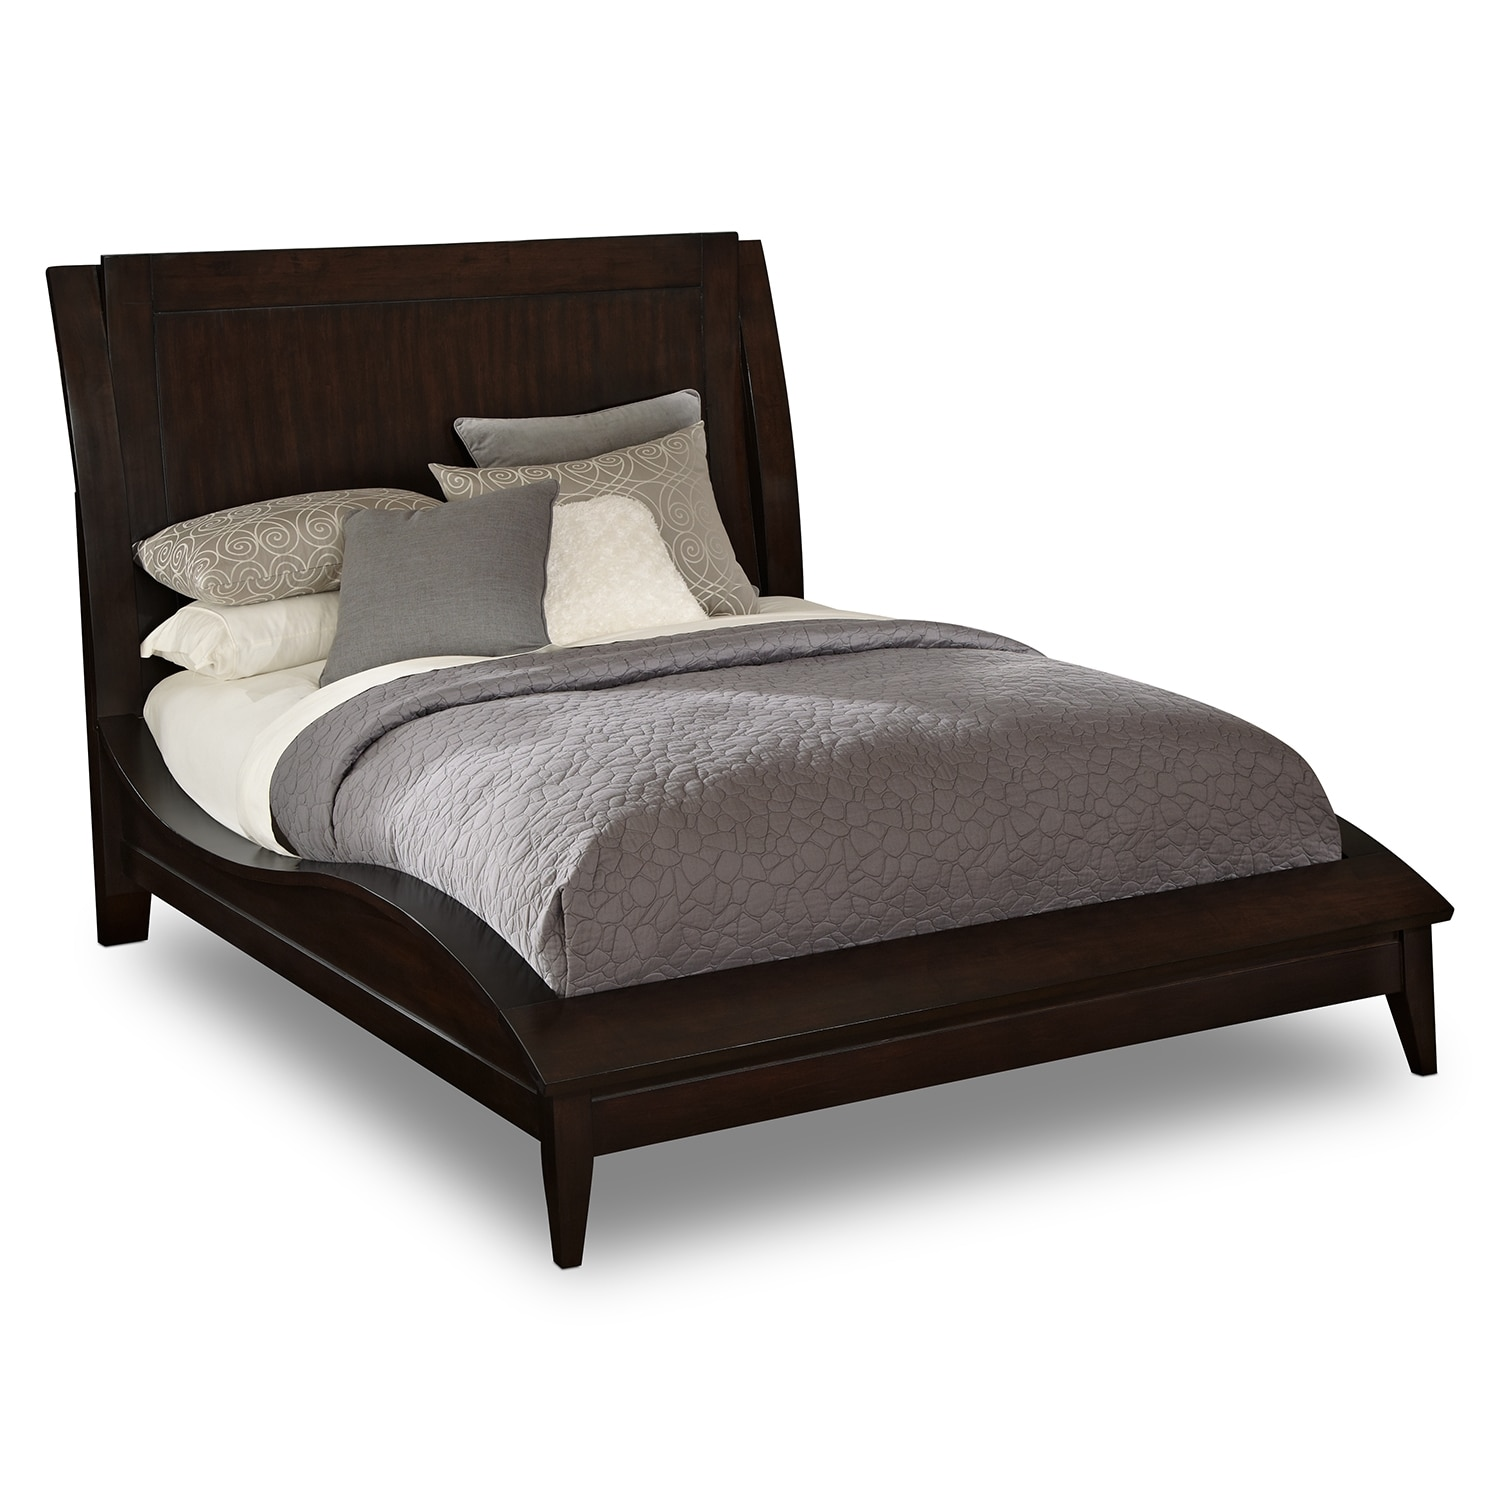 [Cascade Merlot King Bed]